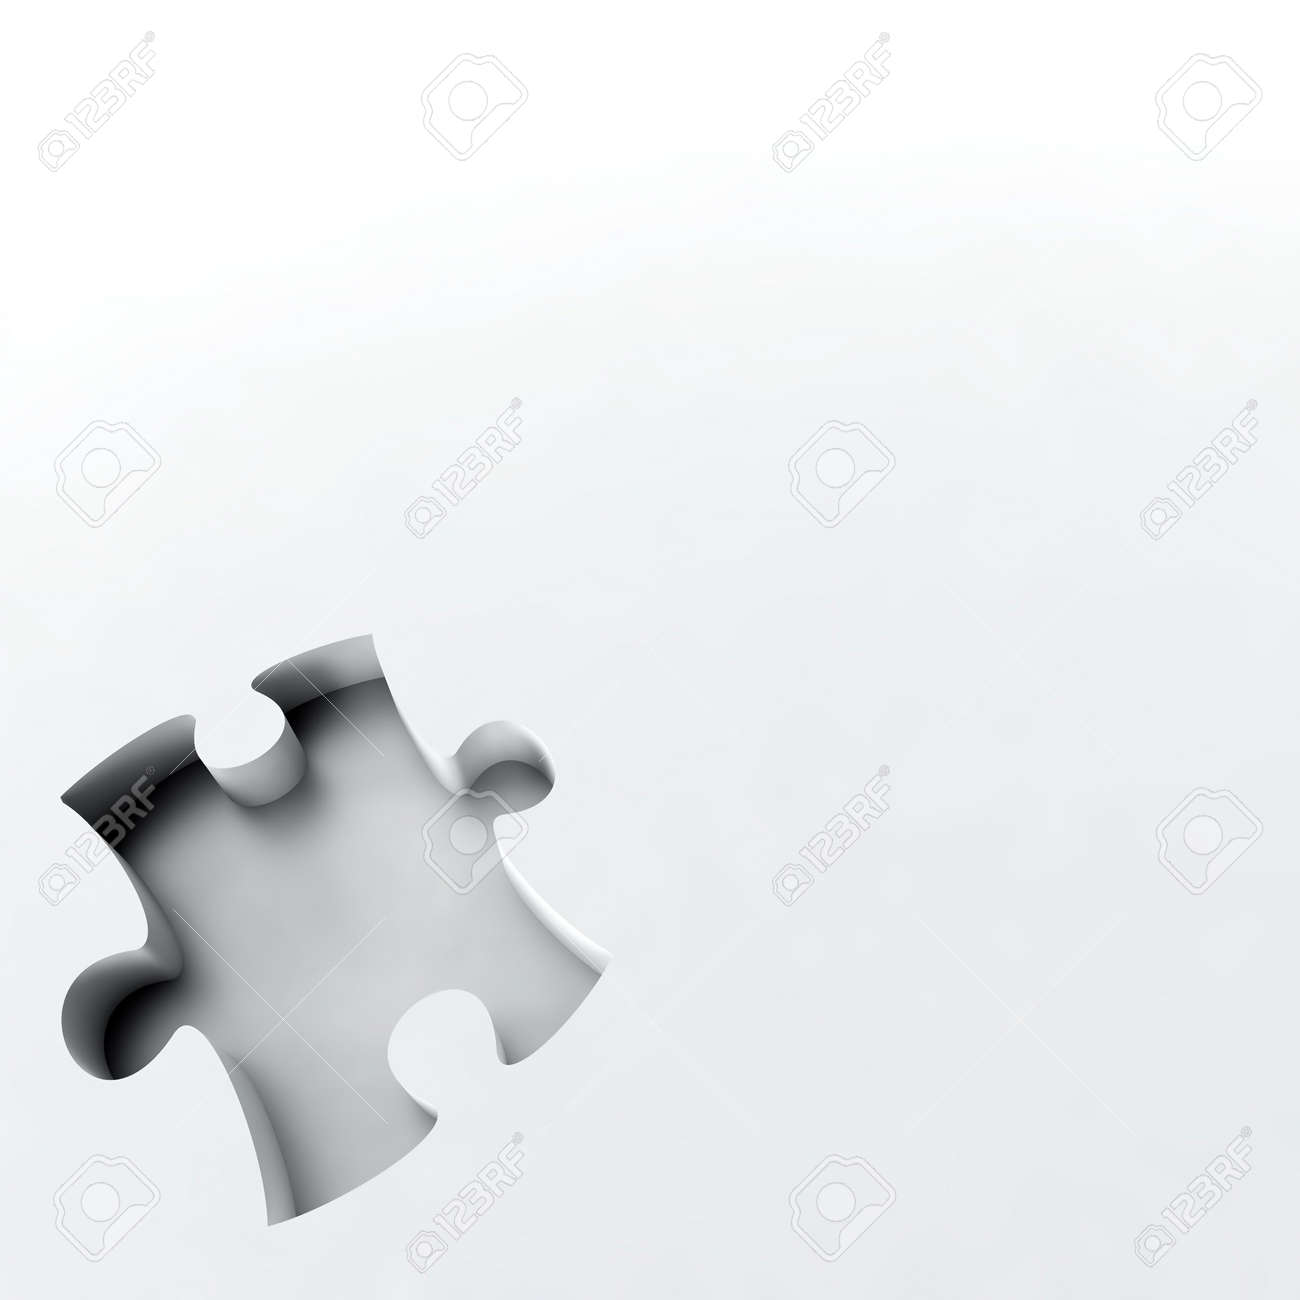 deepening as puzzle in the corner of white surface Stock Photo - 4706791